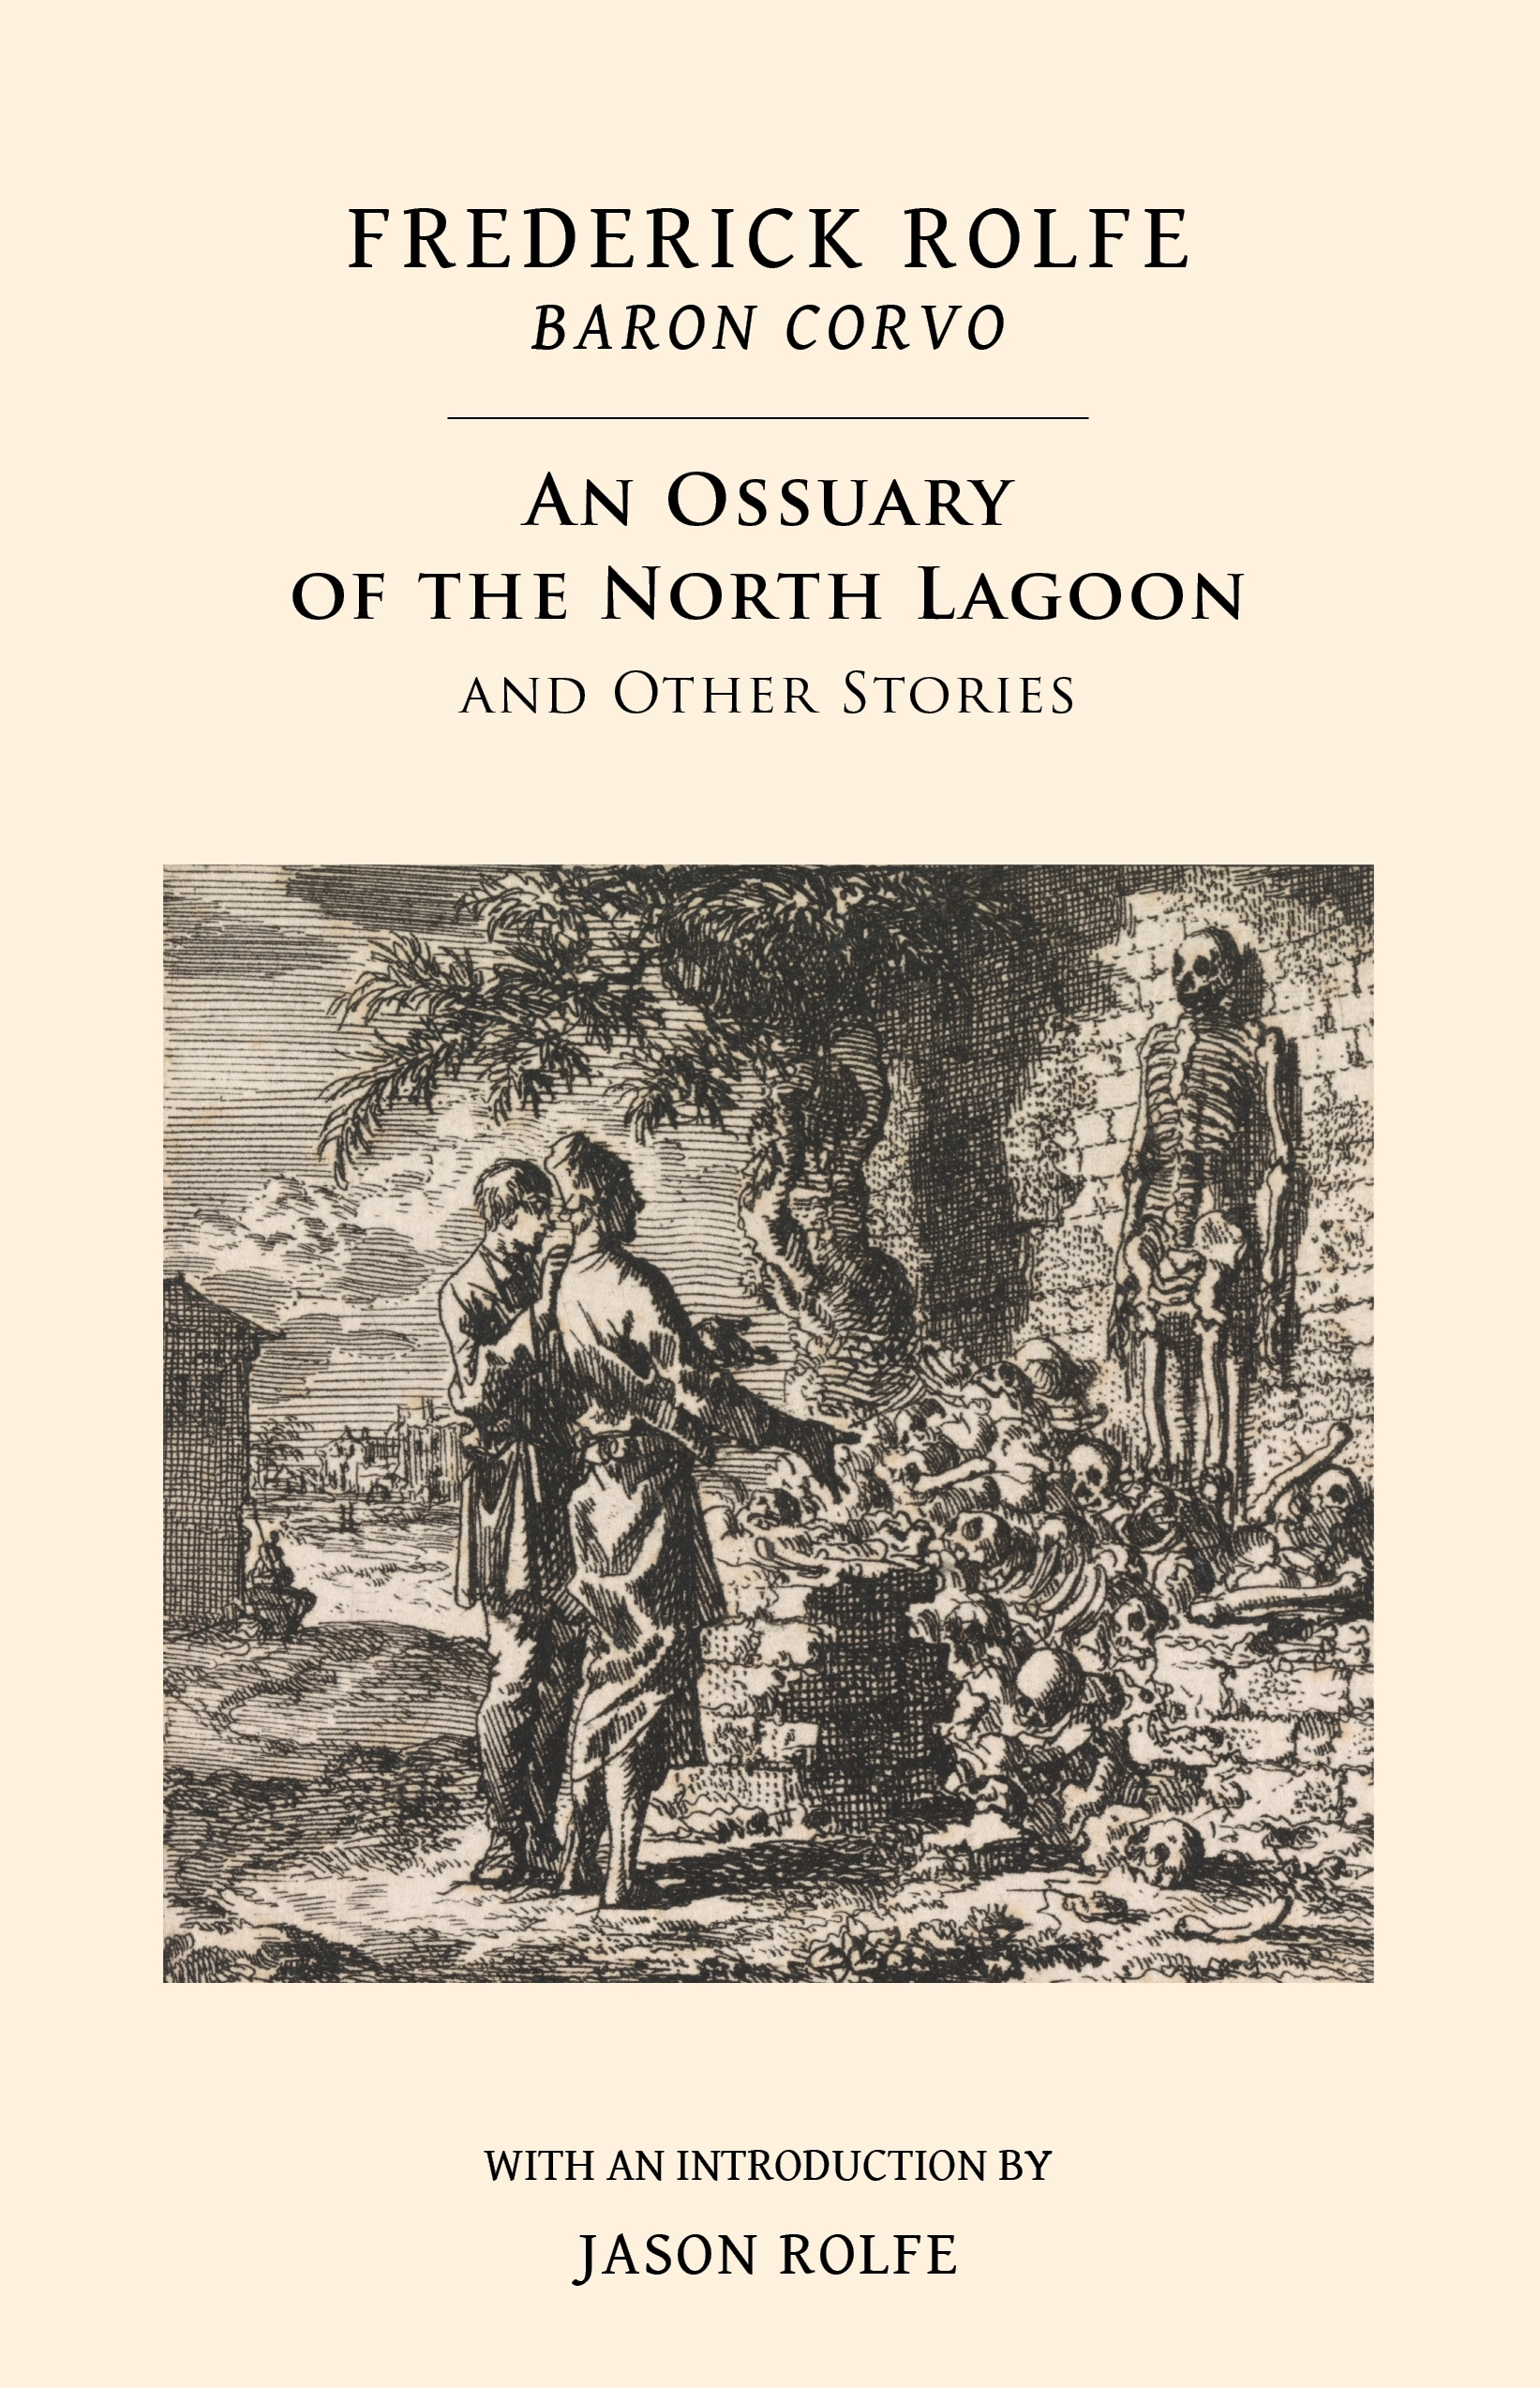 An Ossuary of the North Lagoon and Other Stories